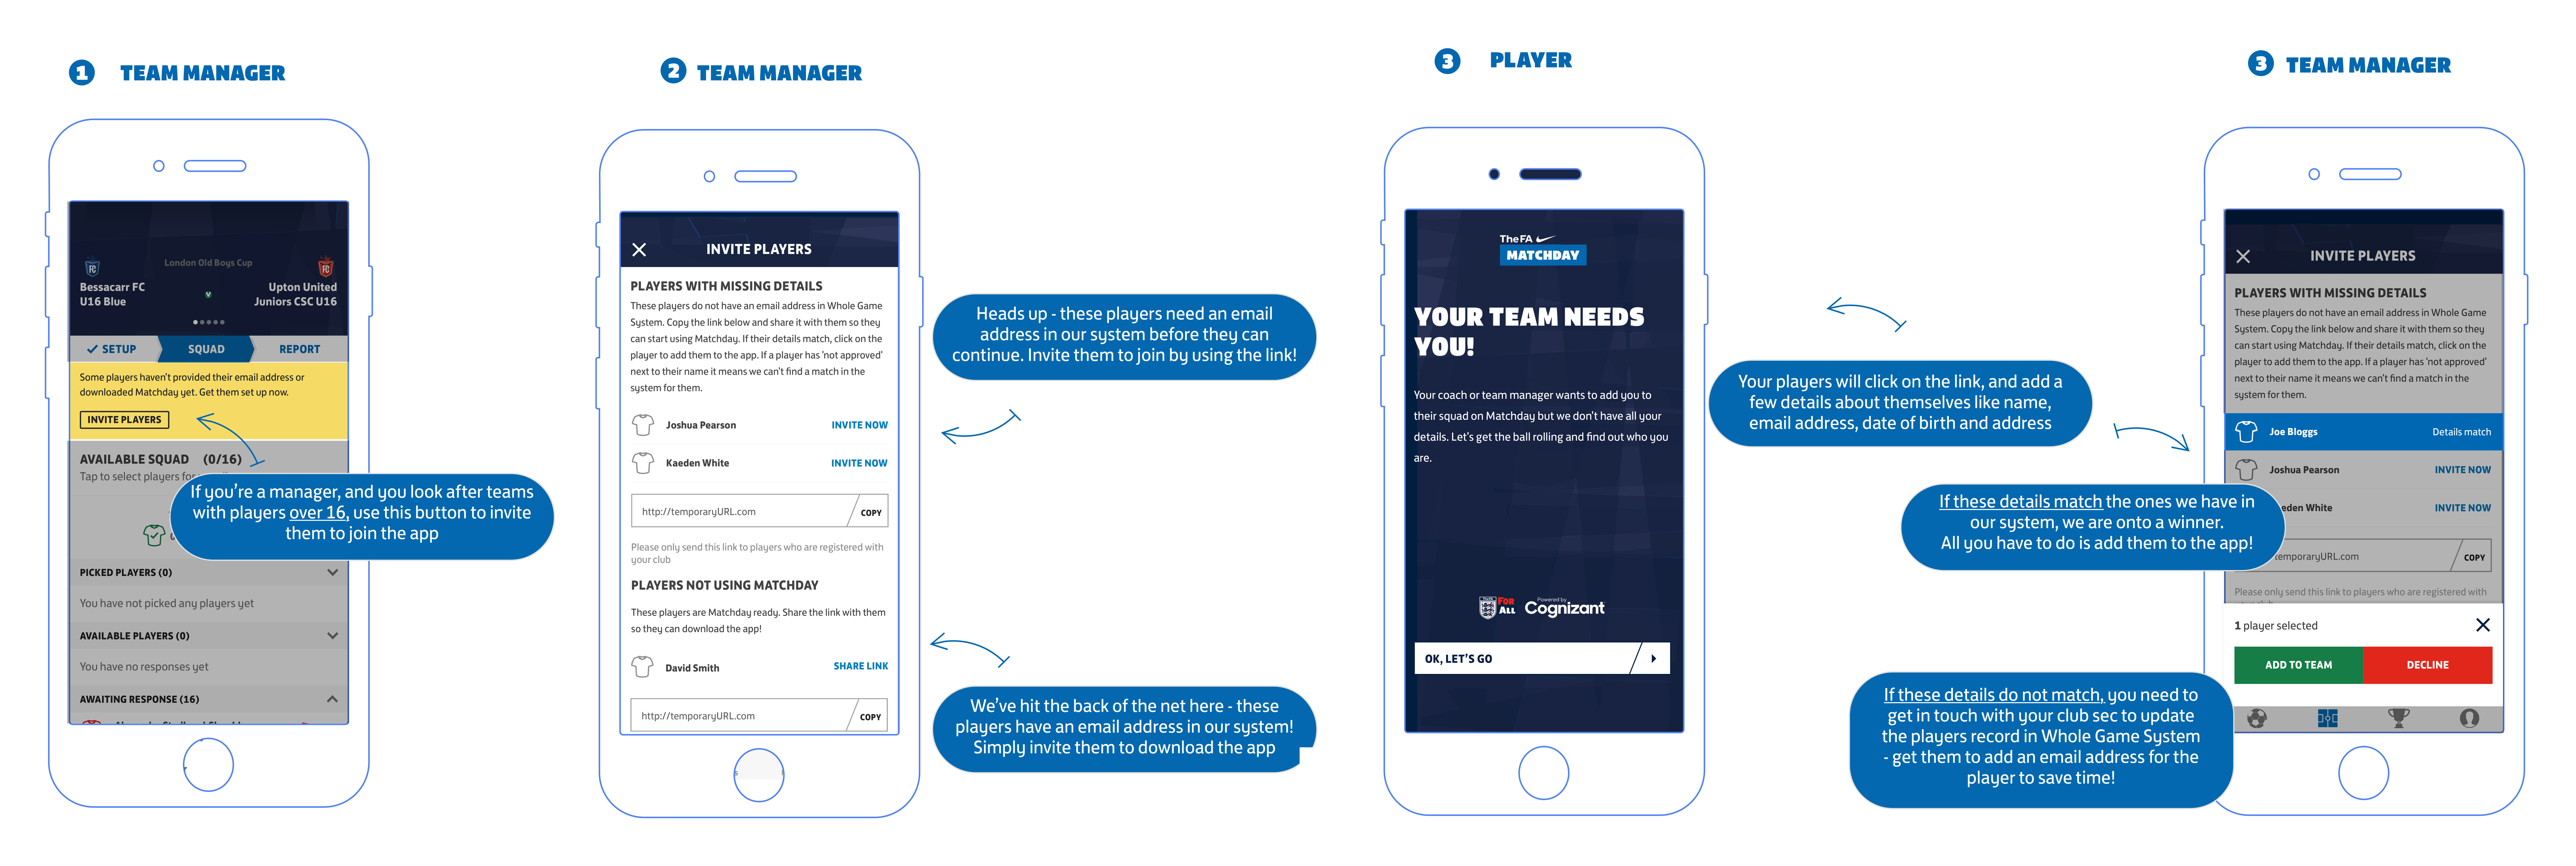 FAQs - Matchday - Get Involved | The Football Association